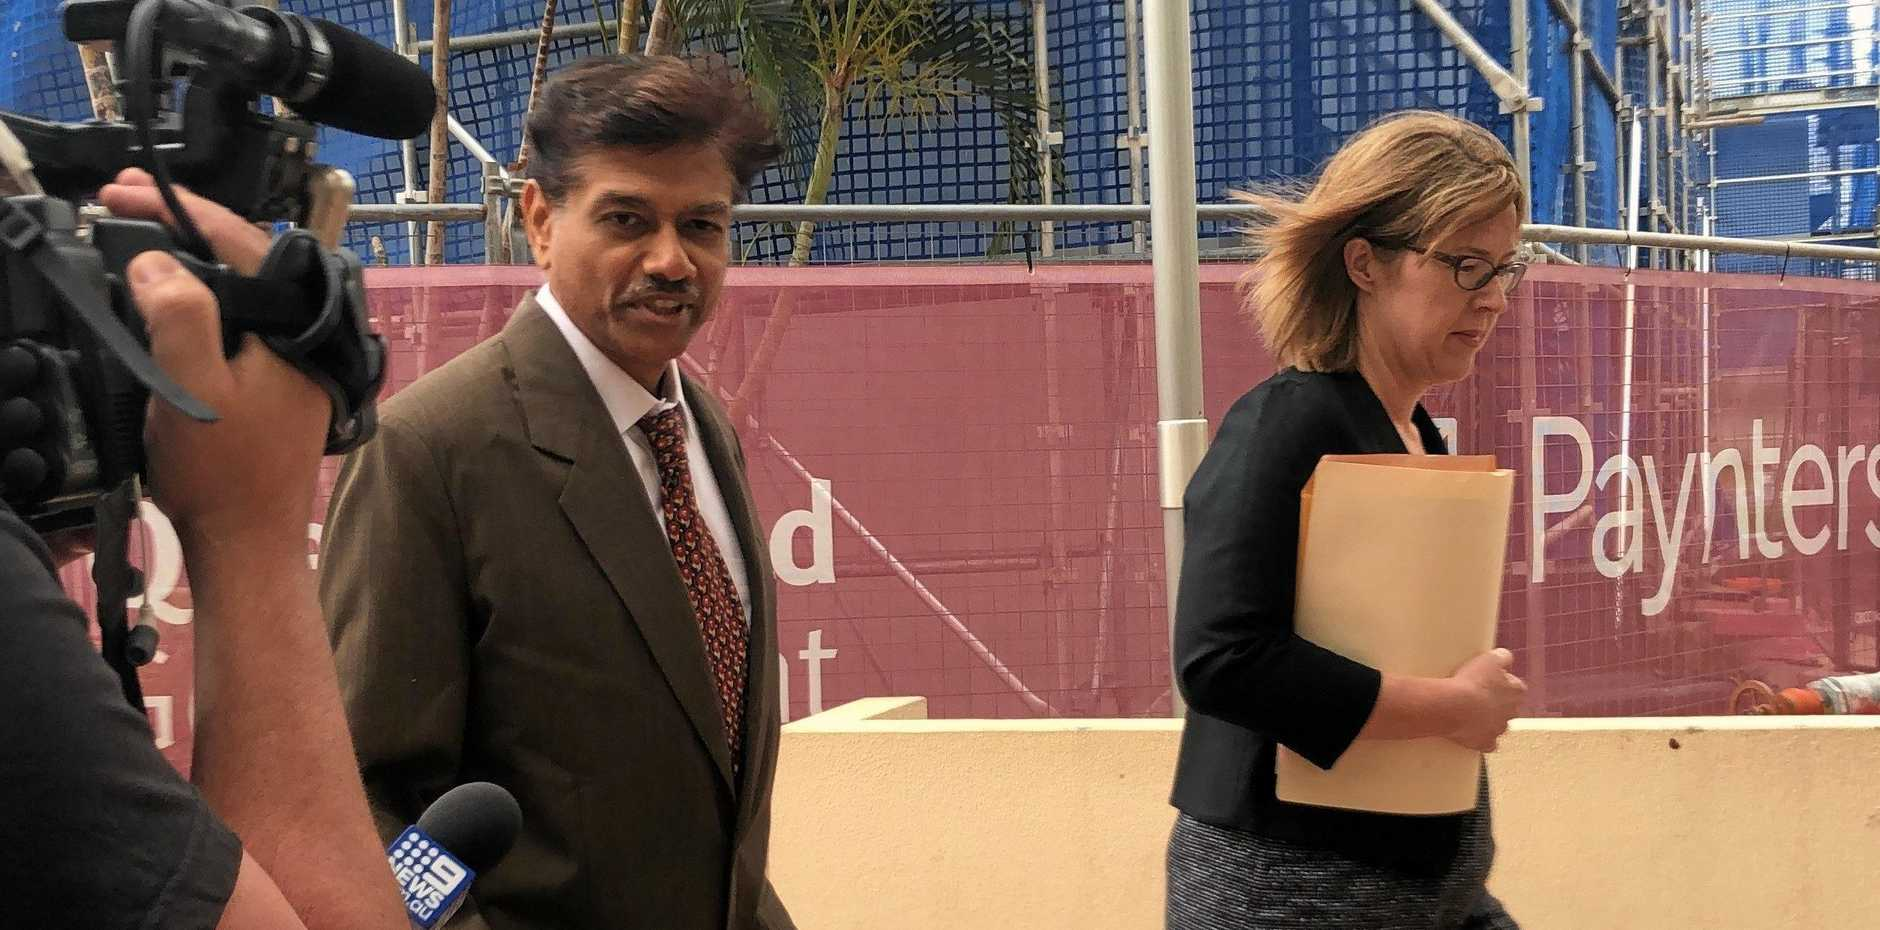 Dr Elamurugan Arumugam is accused of sexually assaulting seven patients between 2009-2013. He has pleaded not guilty to all 31 charges and is on trial in the Rockhampton District Court this week.